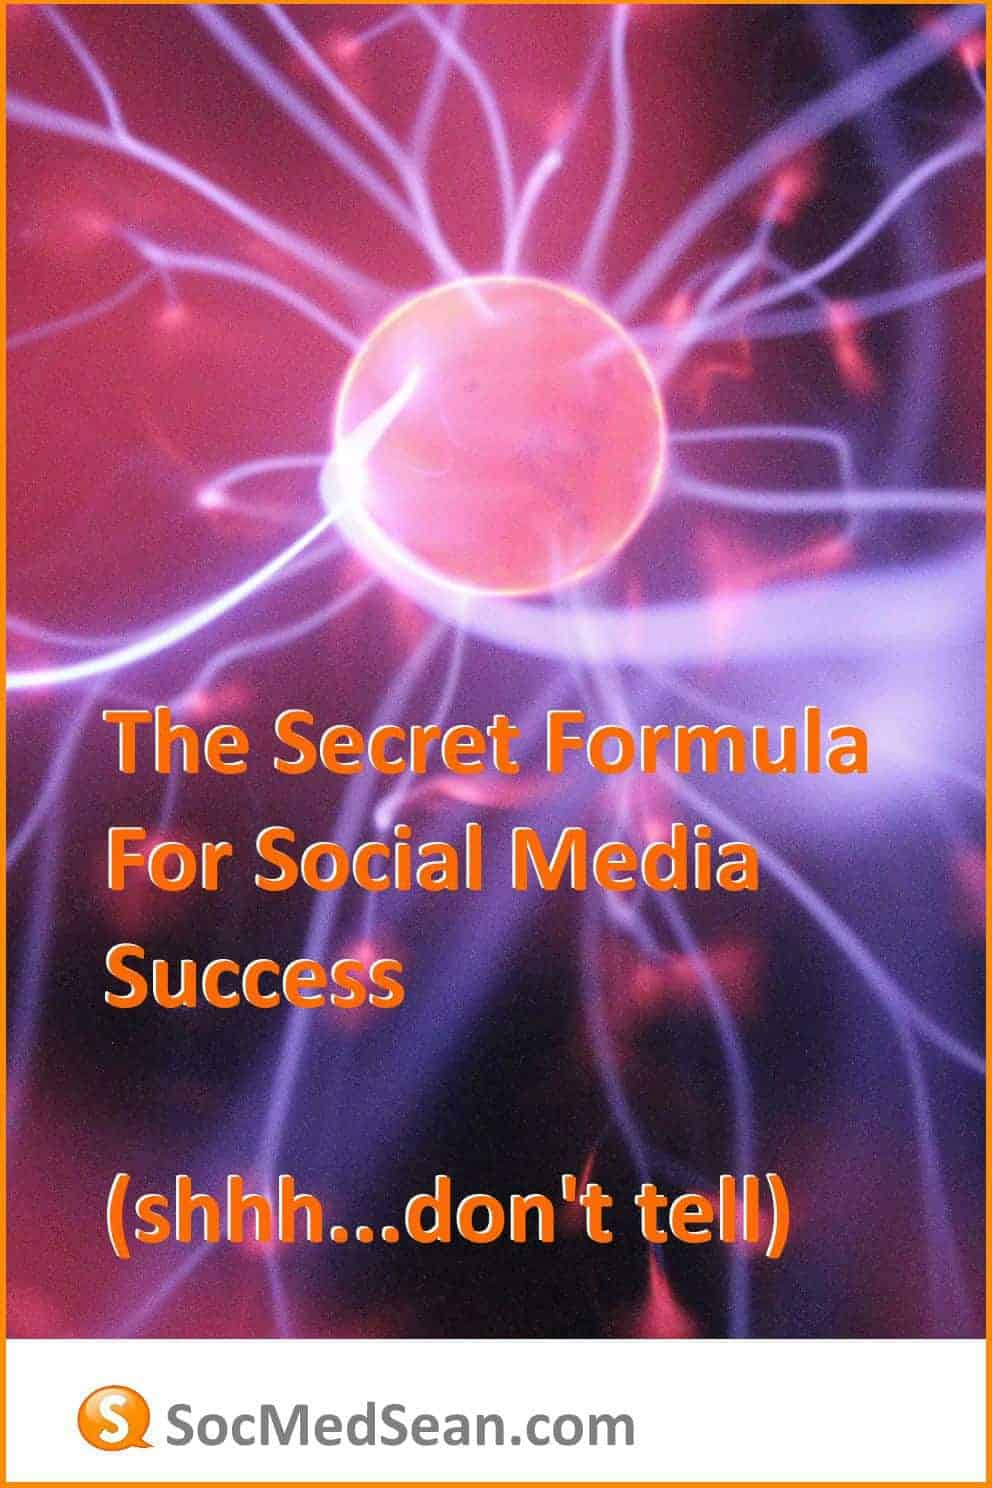 The Secret Formula For Social Media Success